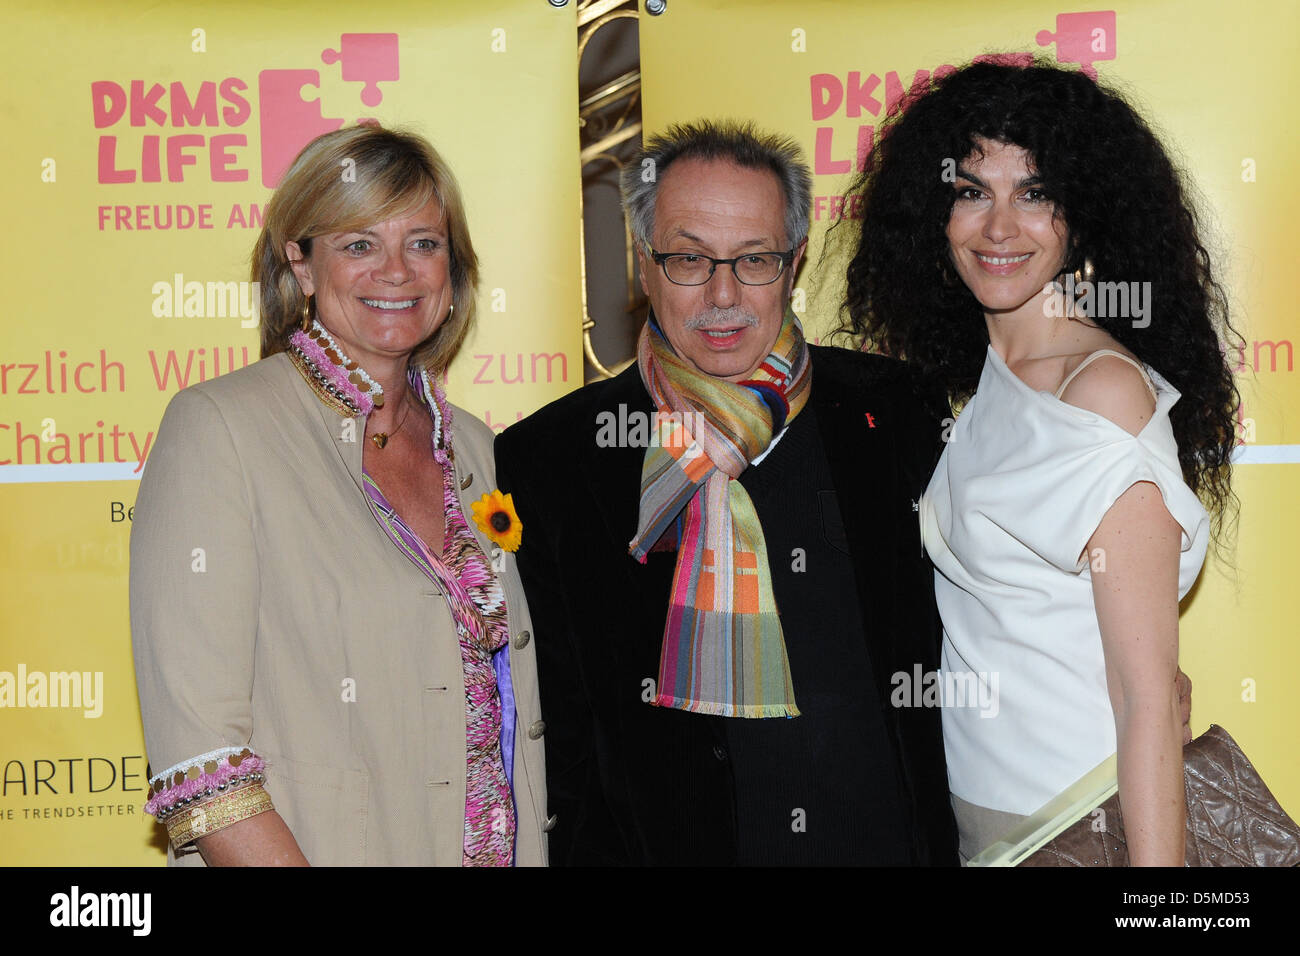 Claudia Rutt and Dieter Kosslick and Janine White at the DKMS Ladies Lunch at Hotel Alliance. Berlin Germany Stock Photo